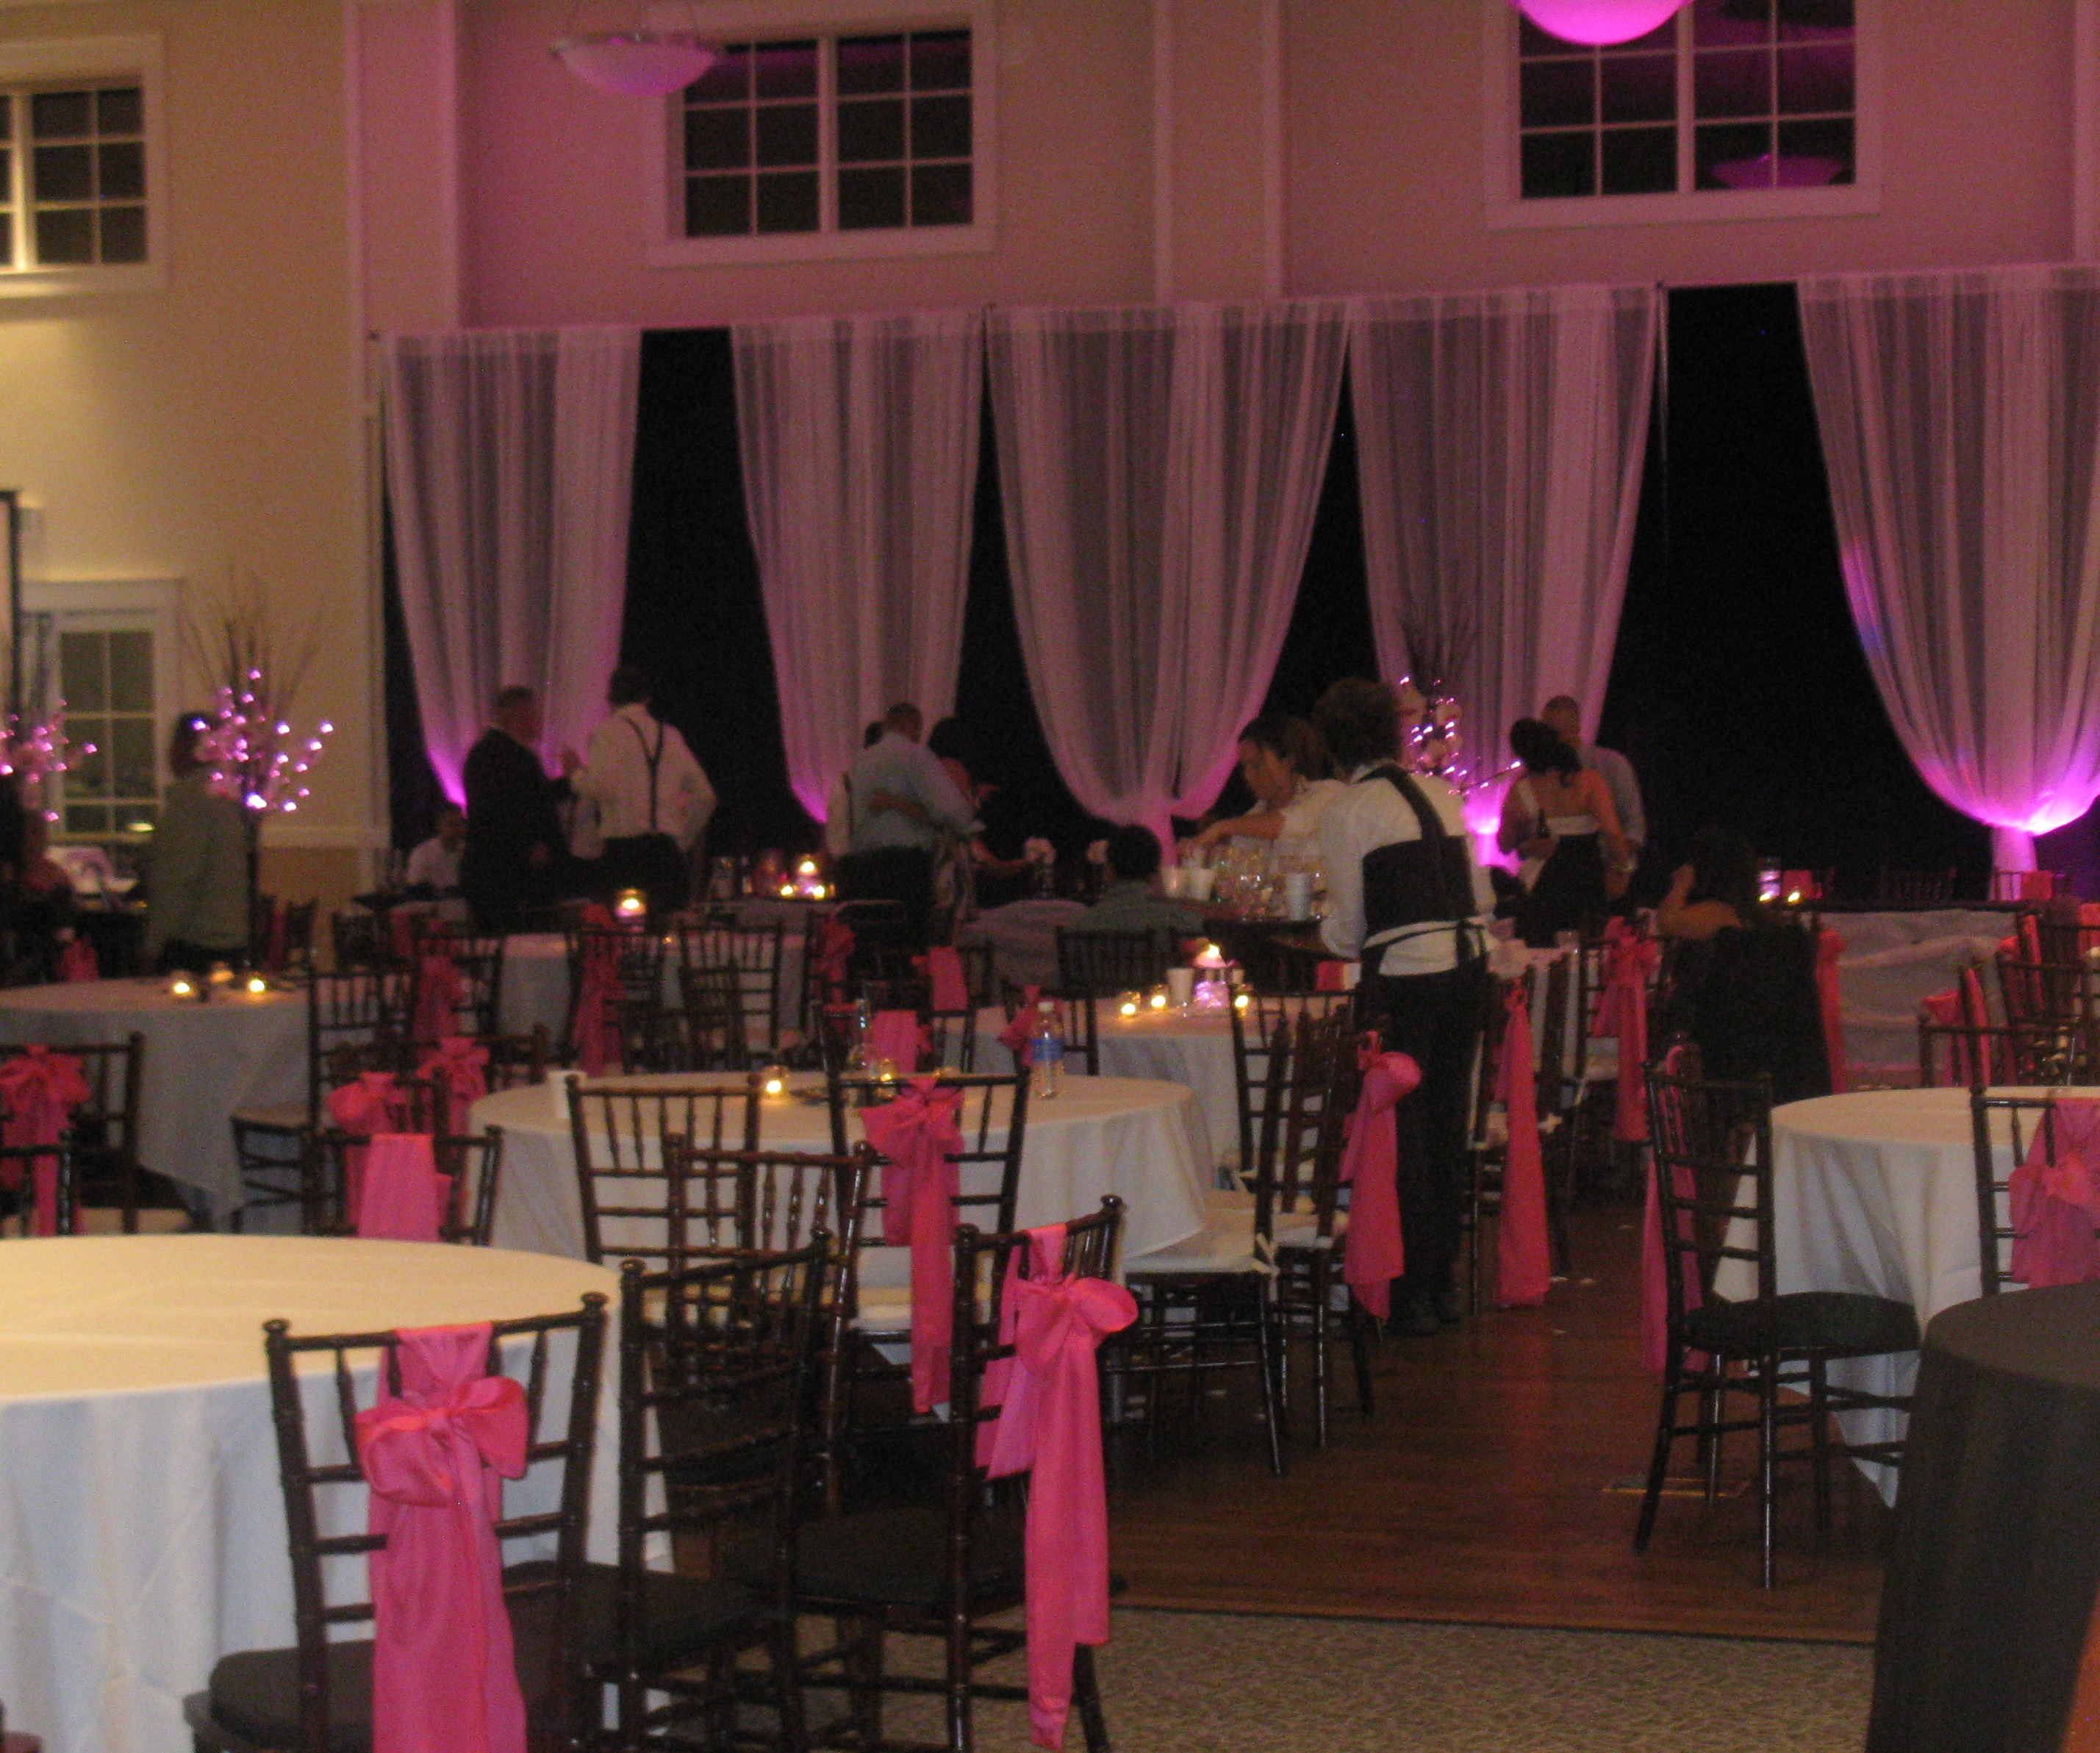 pink, black & white wedding - Wedding-planner Denver.JPG